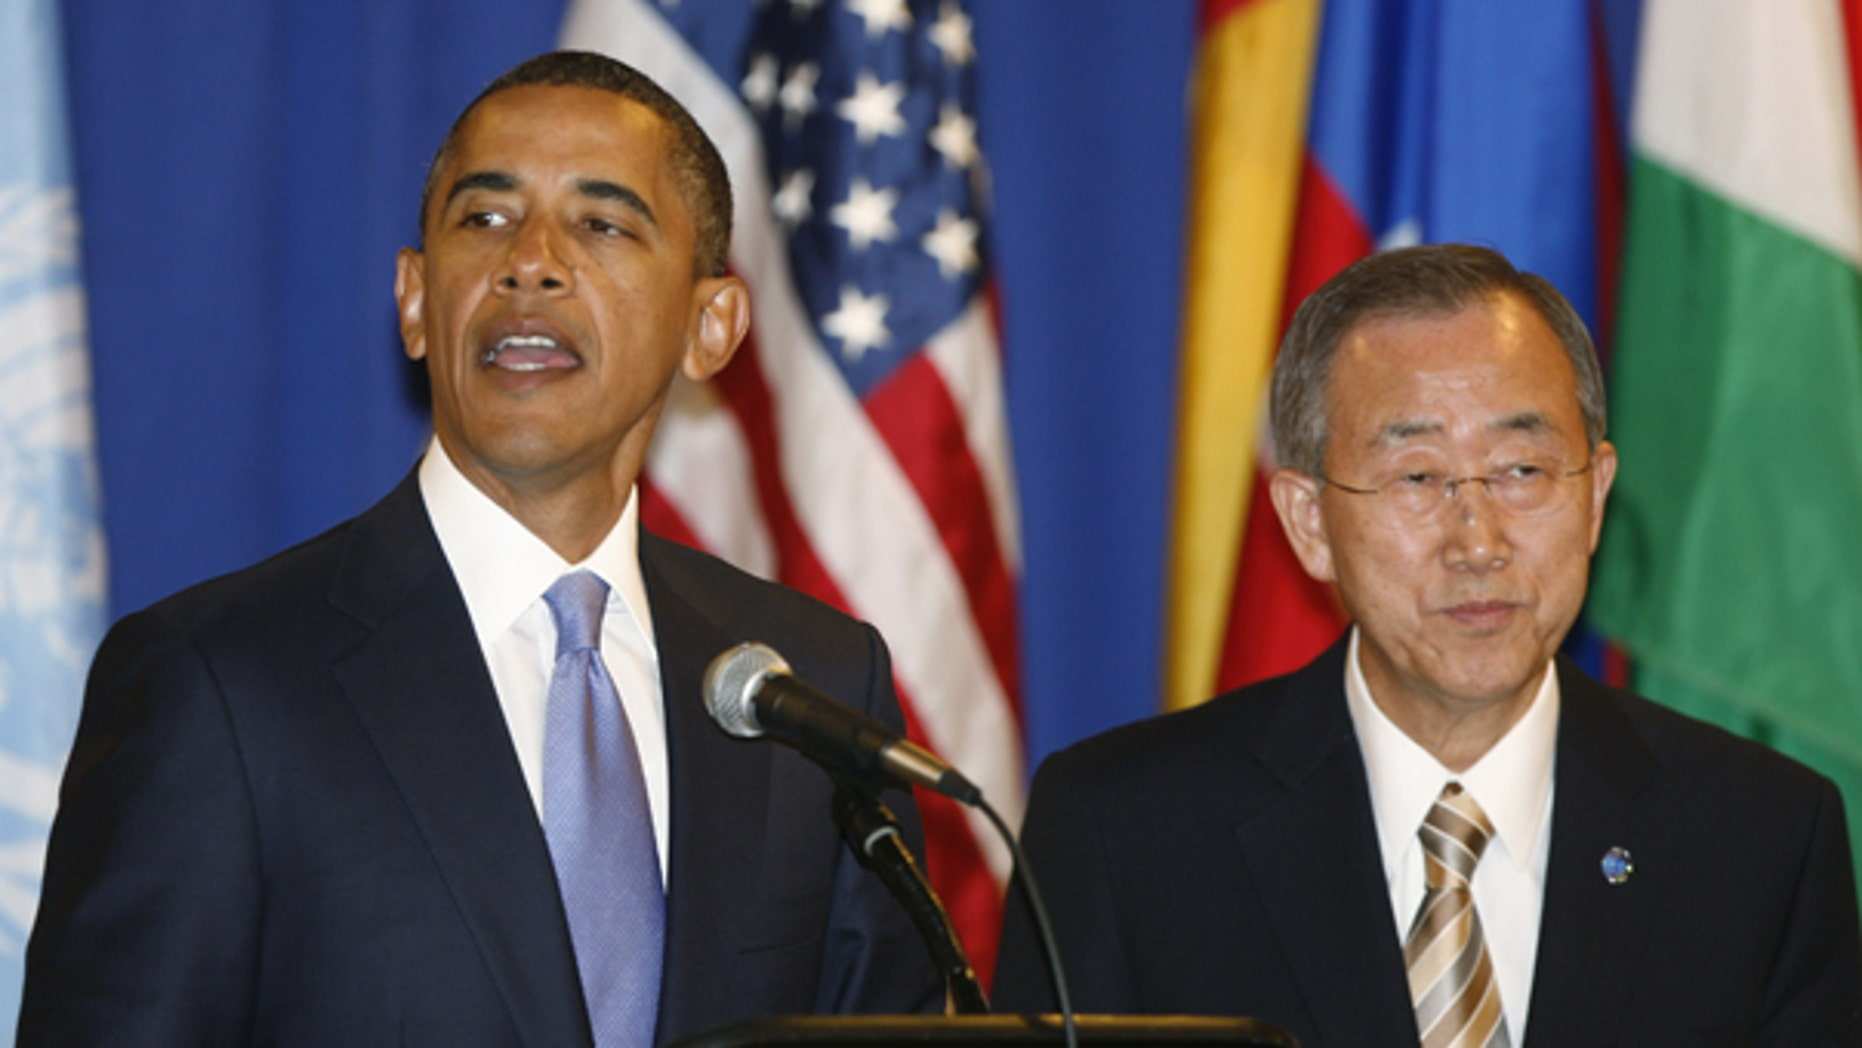 Sept. 23: President Obama gives a toast at a lunch hosted by United Nations Secretary-General Ban Ki-moon, right, during the 65th session of the U.N. General Assembly at U.N. headquarters.